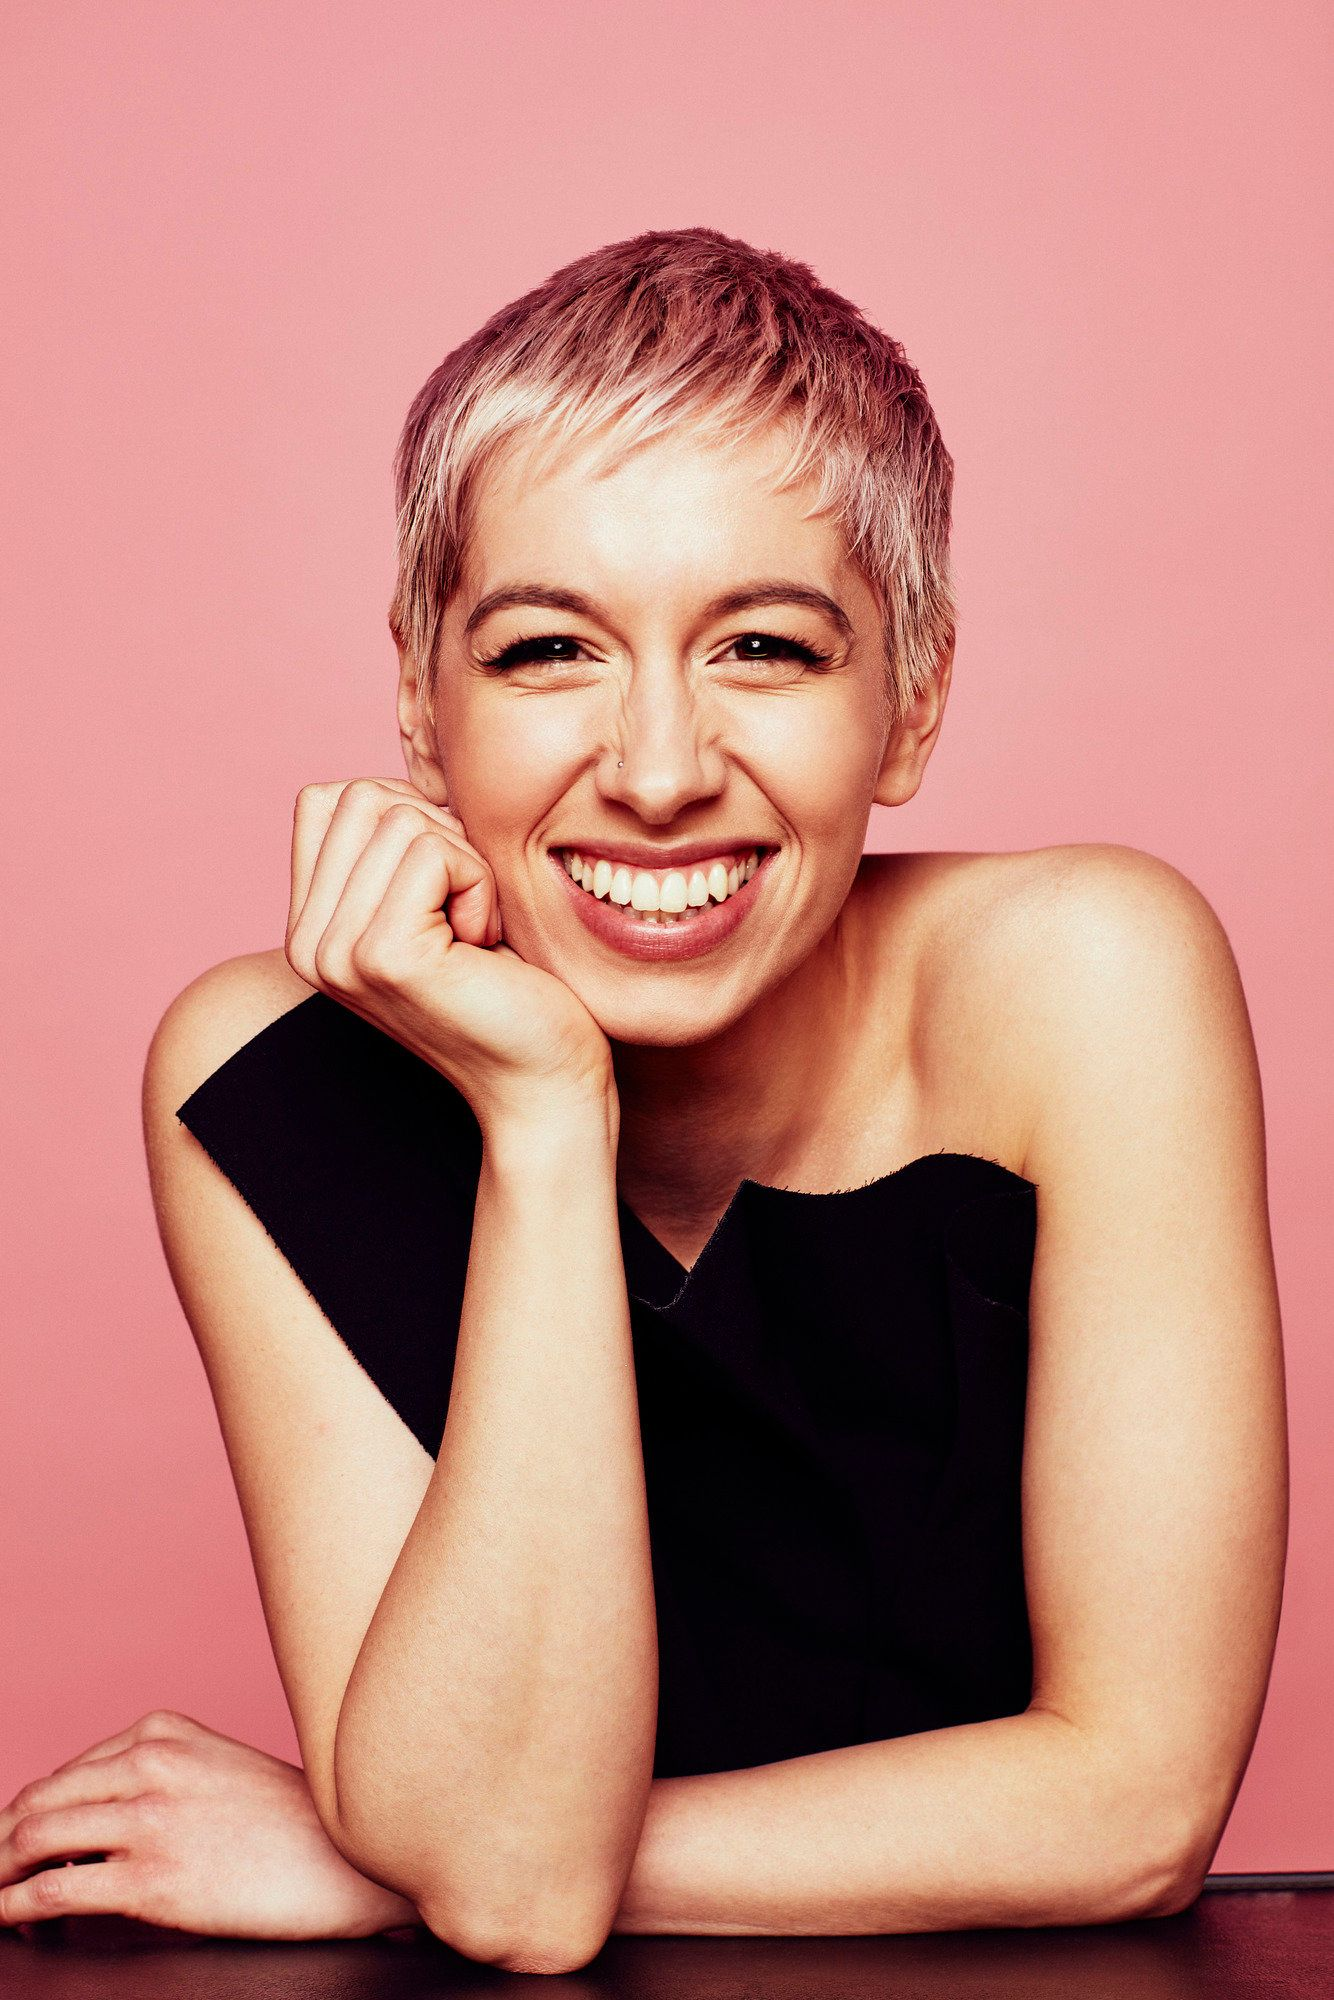 UK Entrant SuRie Reveals How She Thinks The Eurovision Song Contest 'Could Save The World'